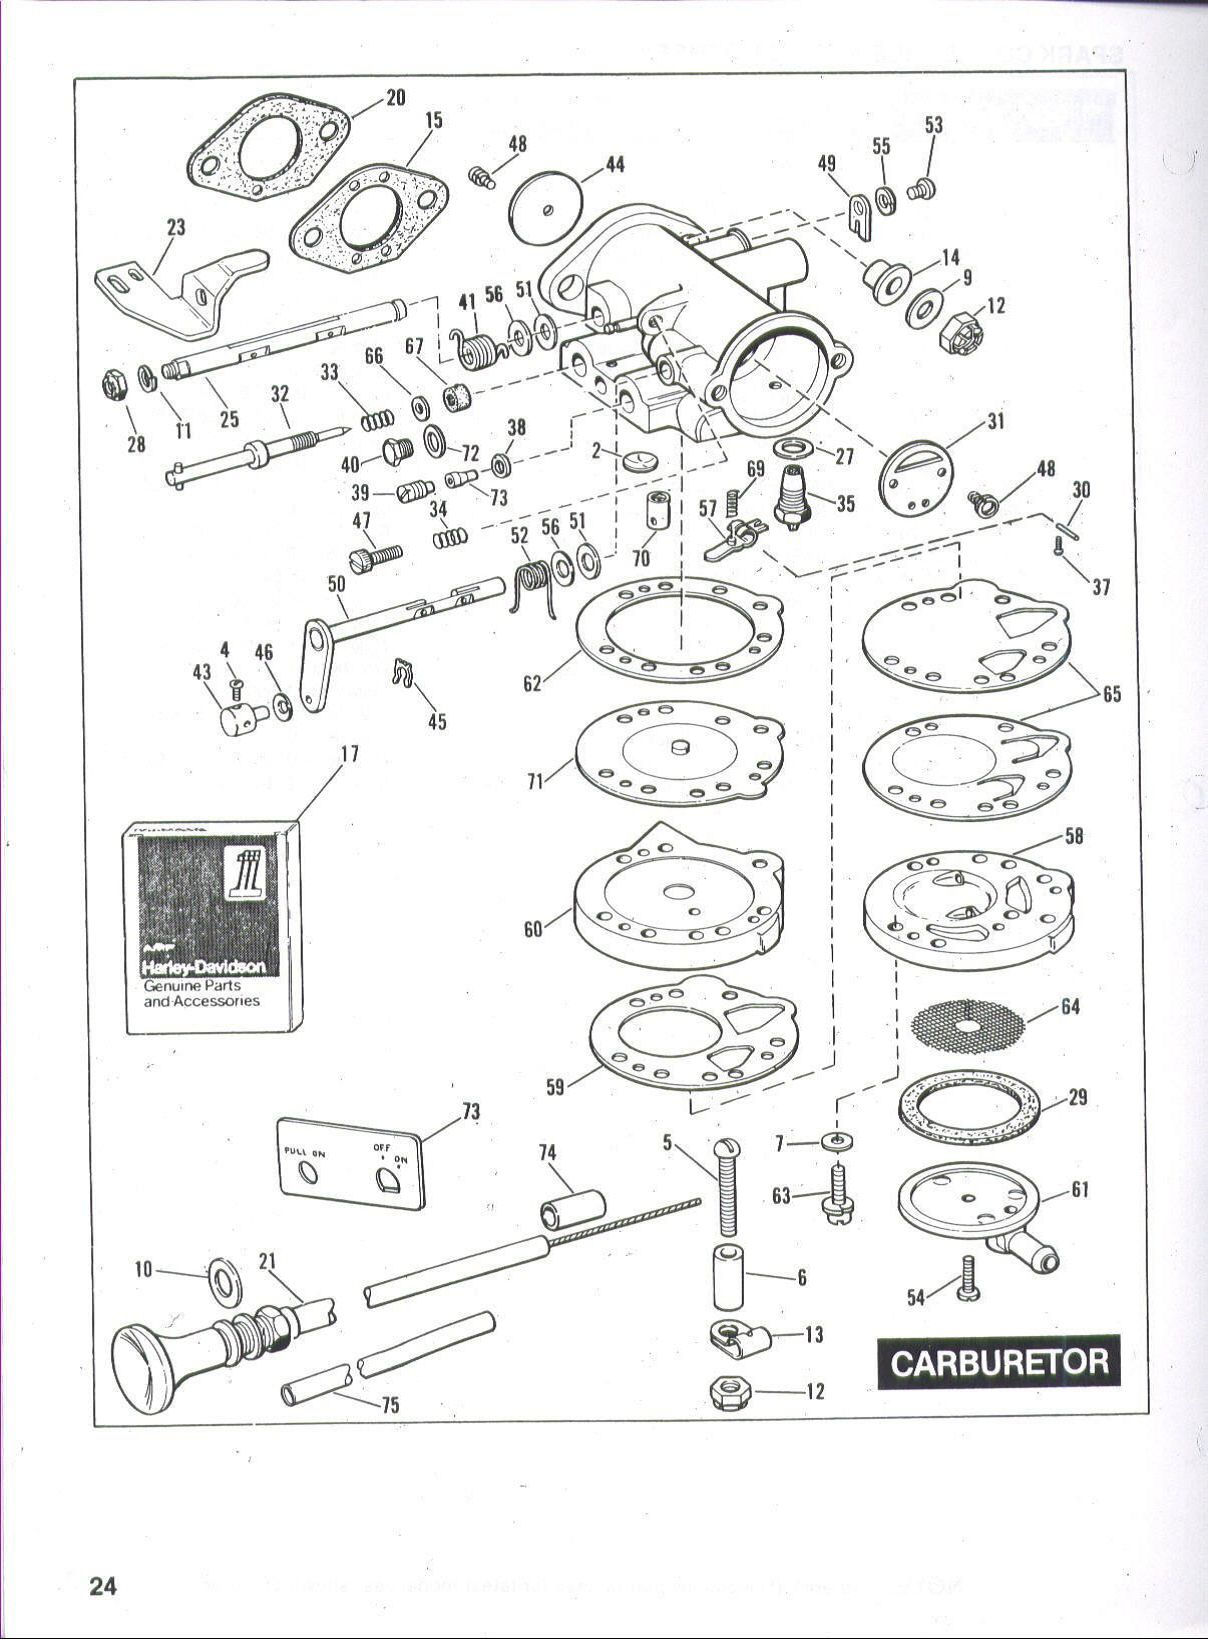 48 Volt Ezgo Wiring Diagram Free Club Cart Another Blog About Harley Davidson Golf Engine Solenoid Car